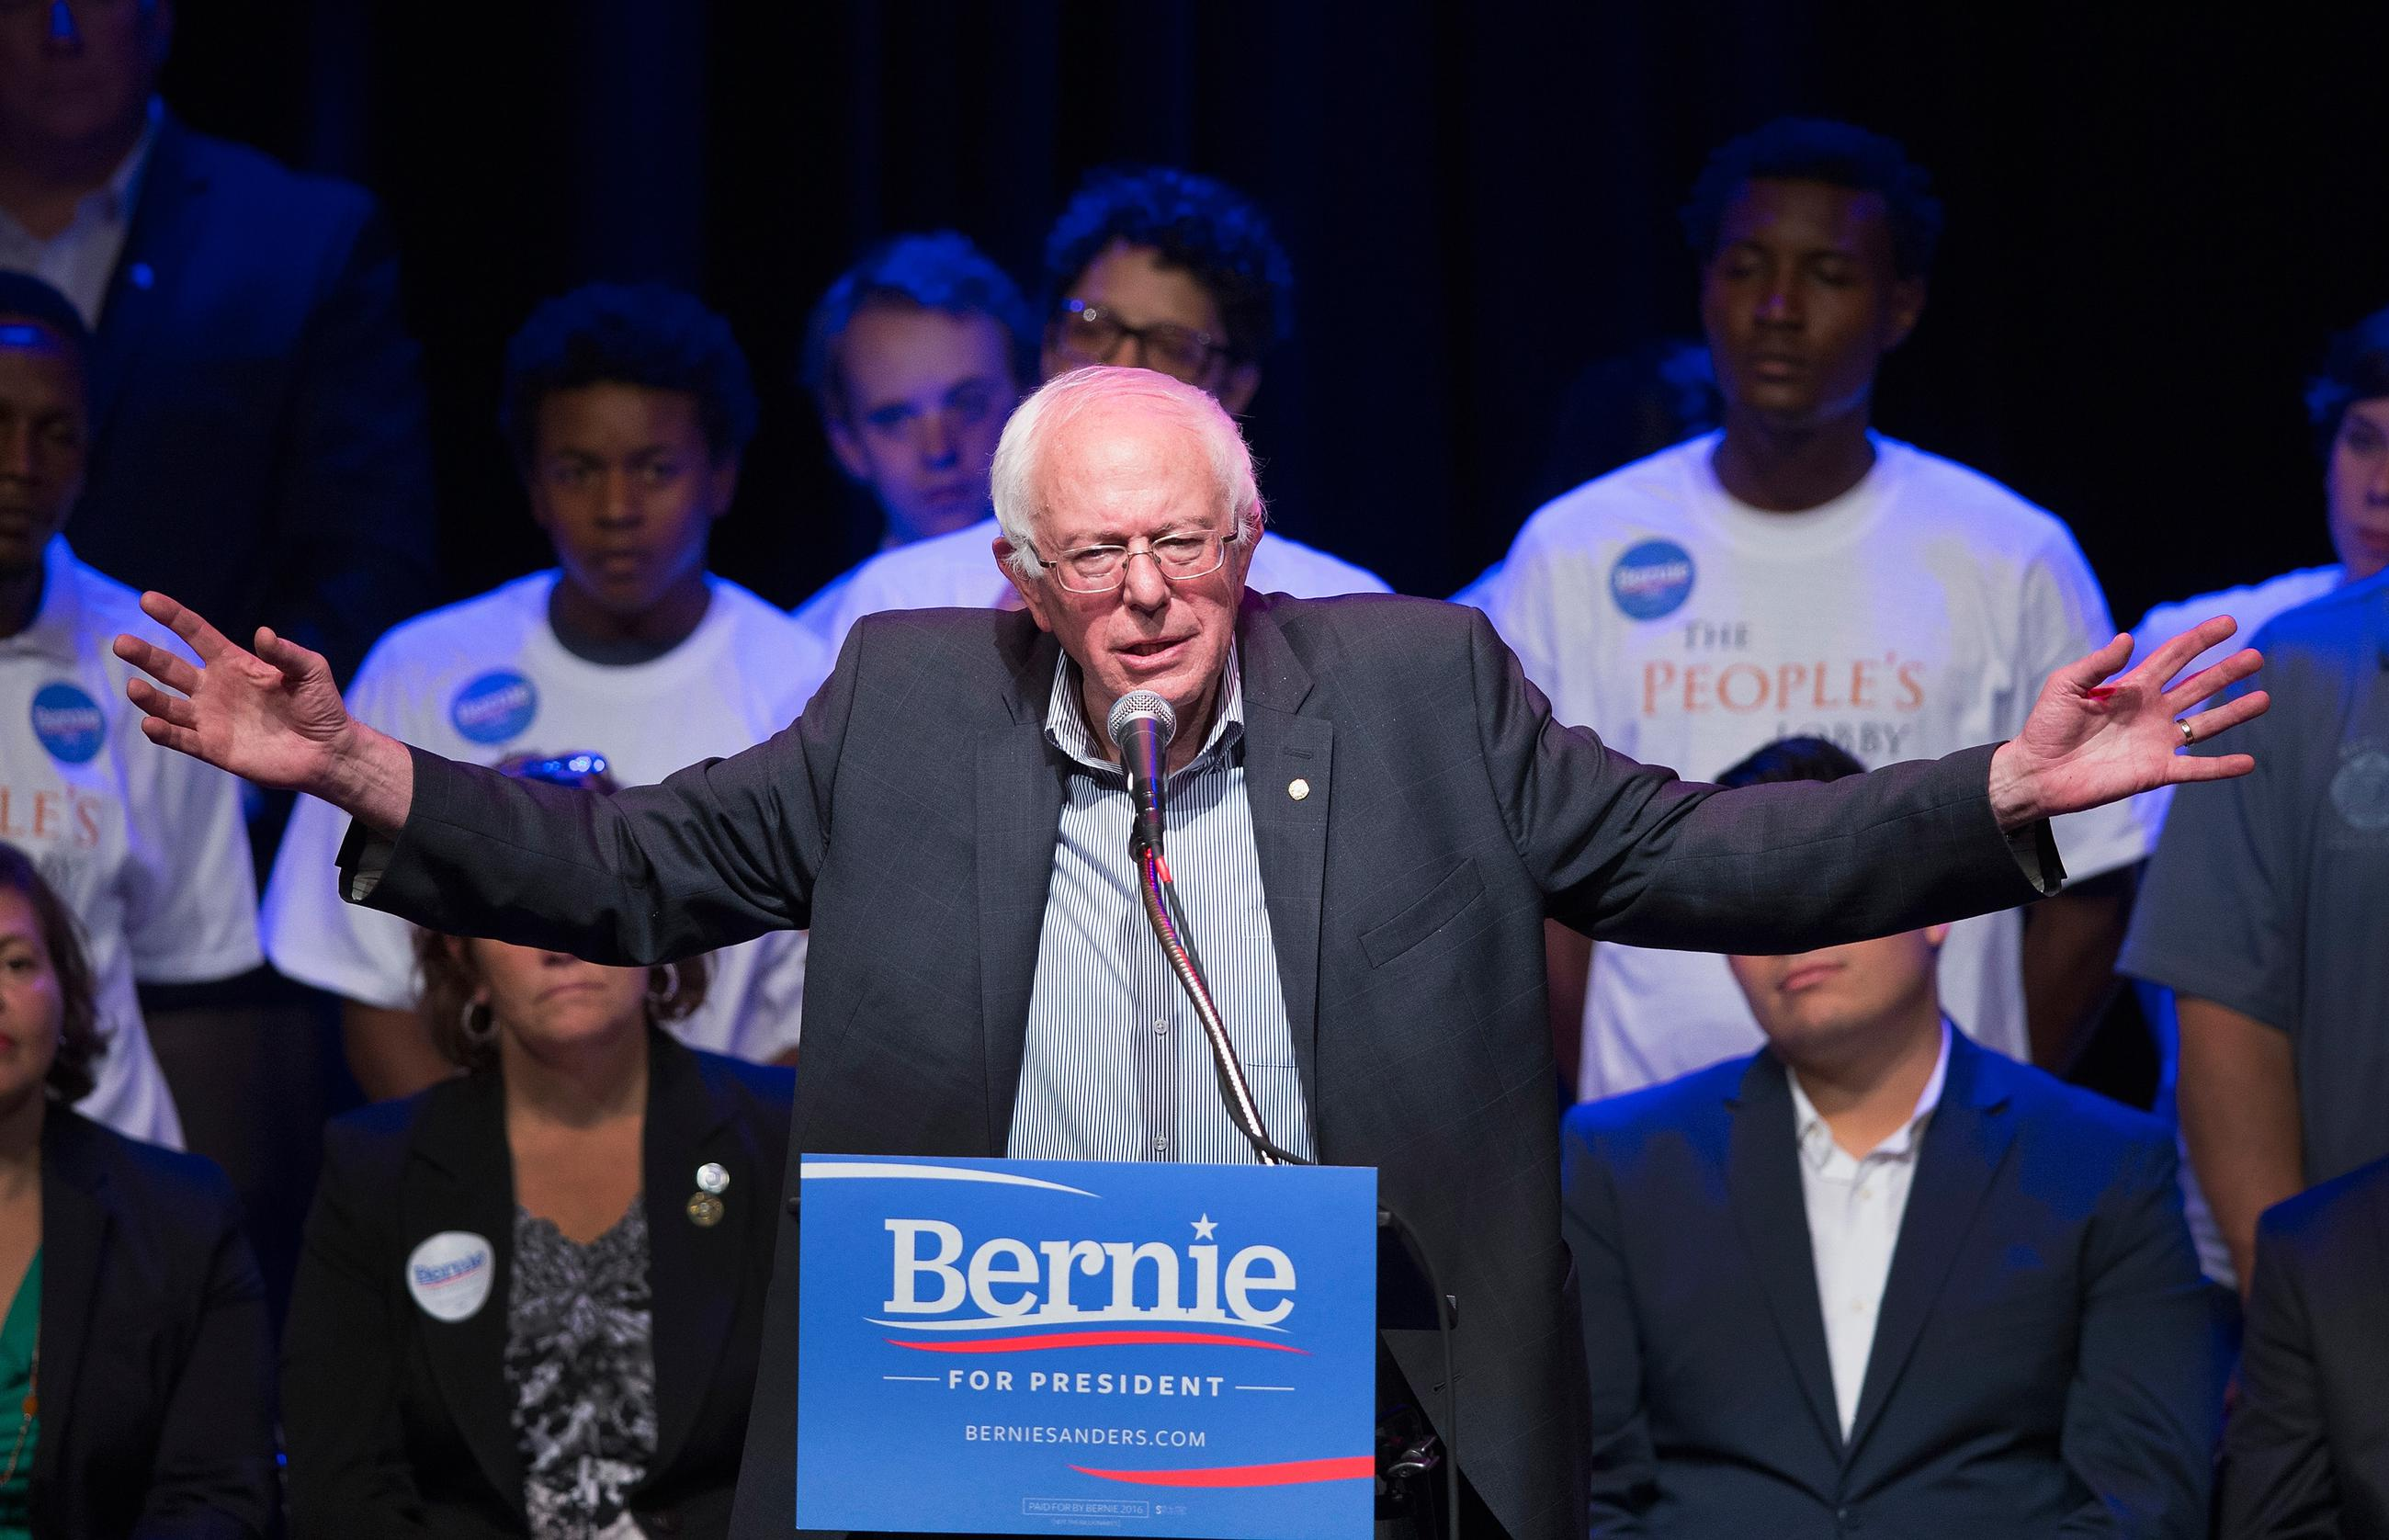 Outsider Candidates Rising in Bernie Sanders's Vermont Wake